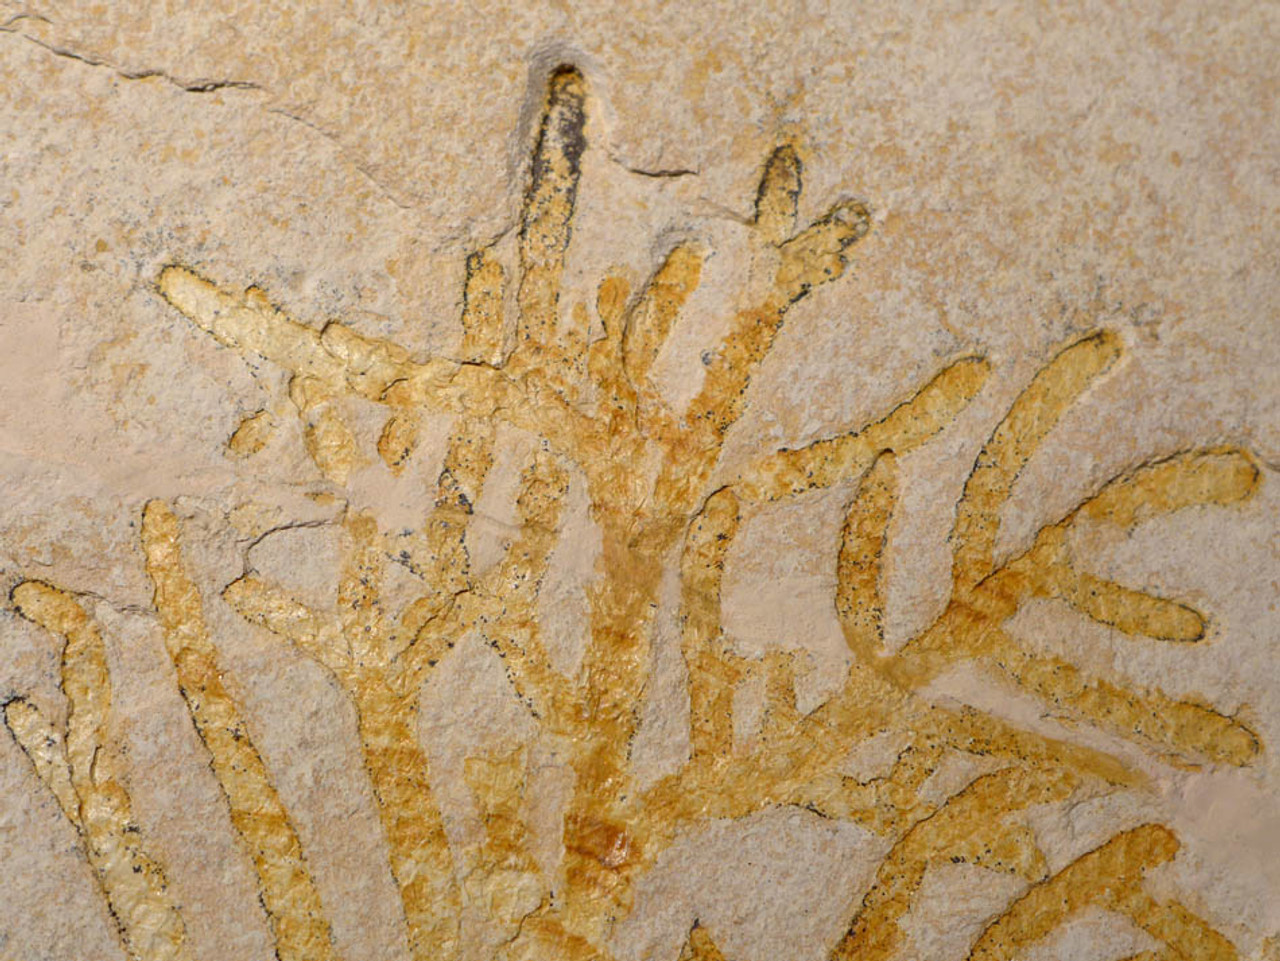 PL071 - LARGE   COMPLETE BRANCH OF A JURASSIC FOSSIL PLANT BRANCH ON LIMESTONE SLAB FROM SOLNHOFEN